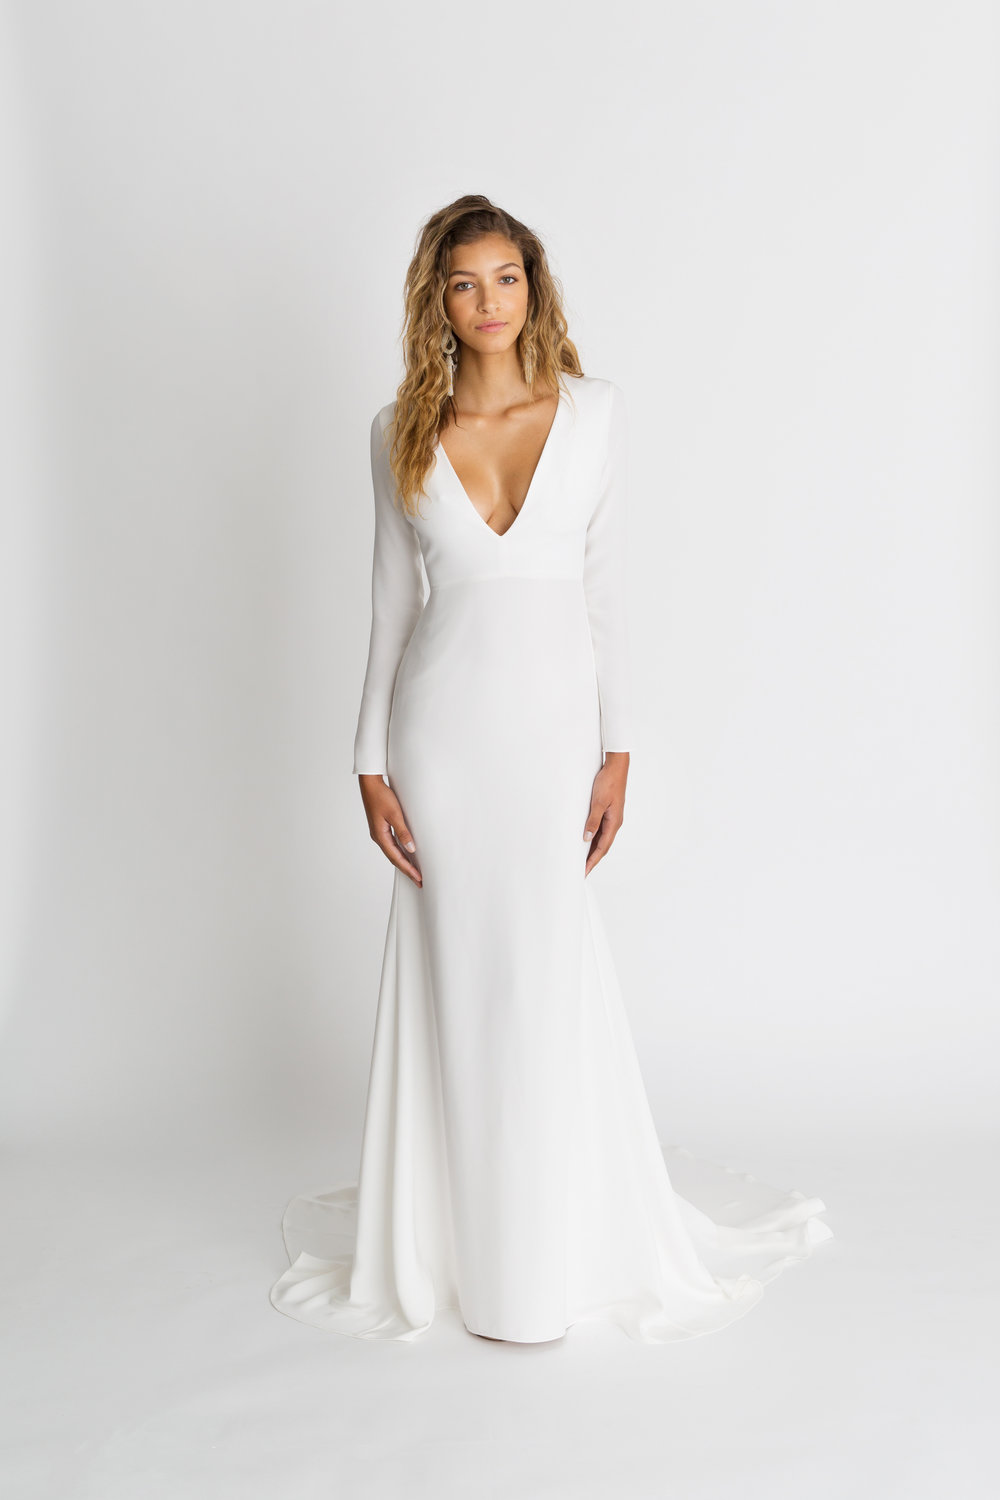 672a58be8208e Portland's Top 3 Alexandra Grecco dresses from Wild Honey Collection ...